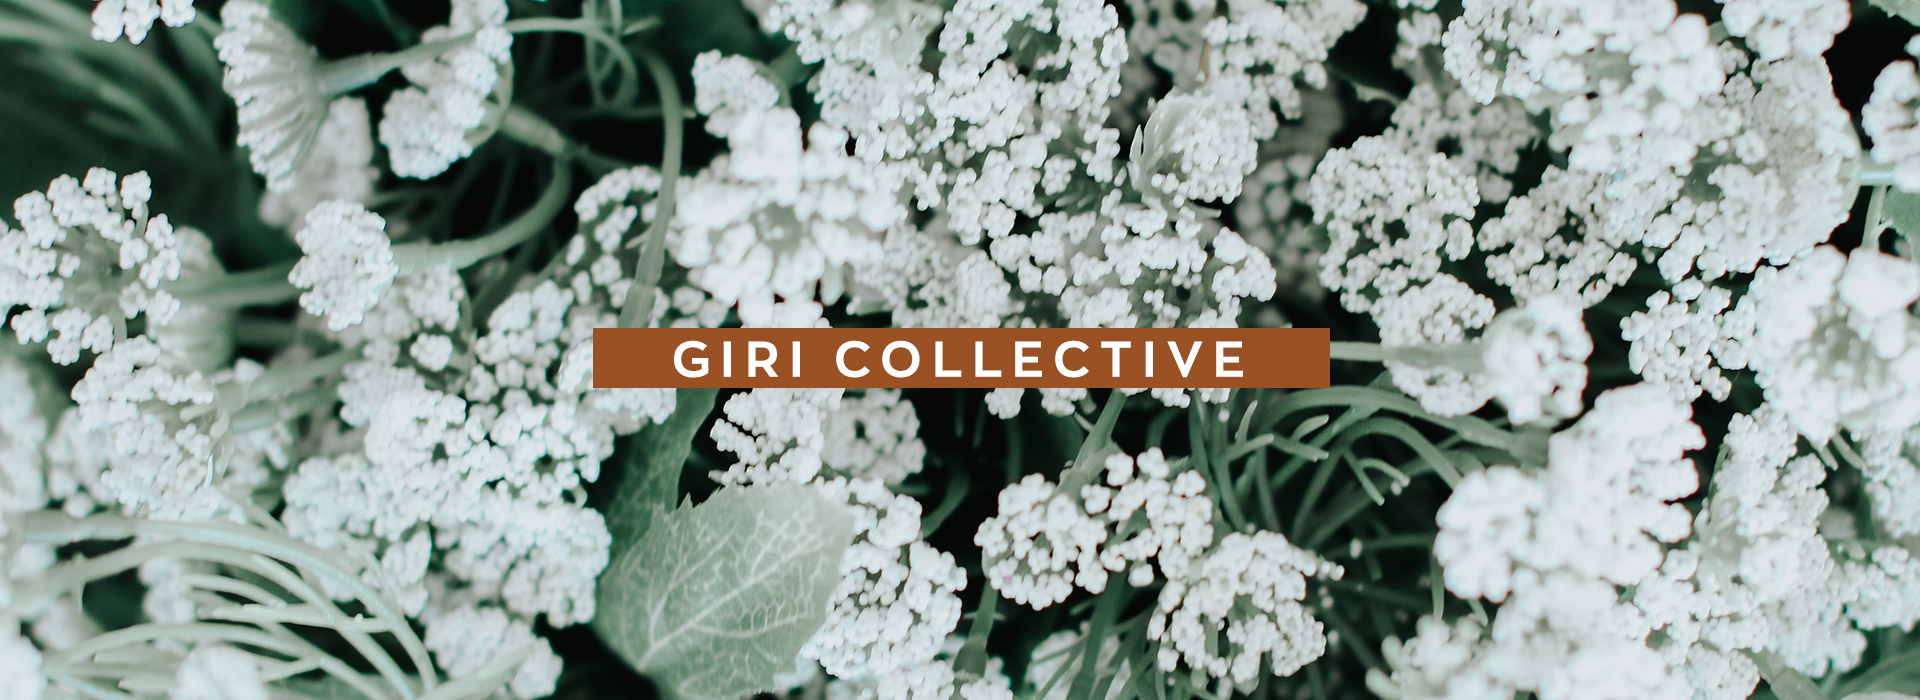 Girl collective banner